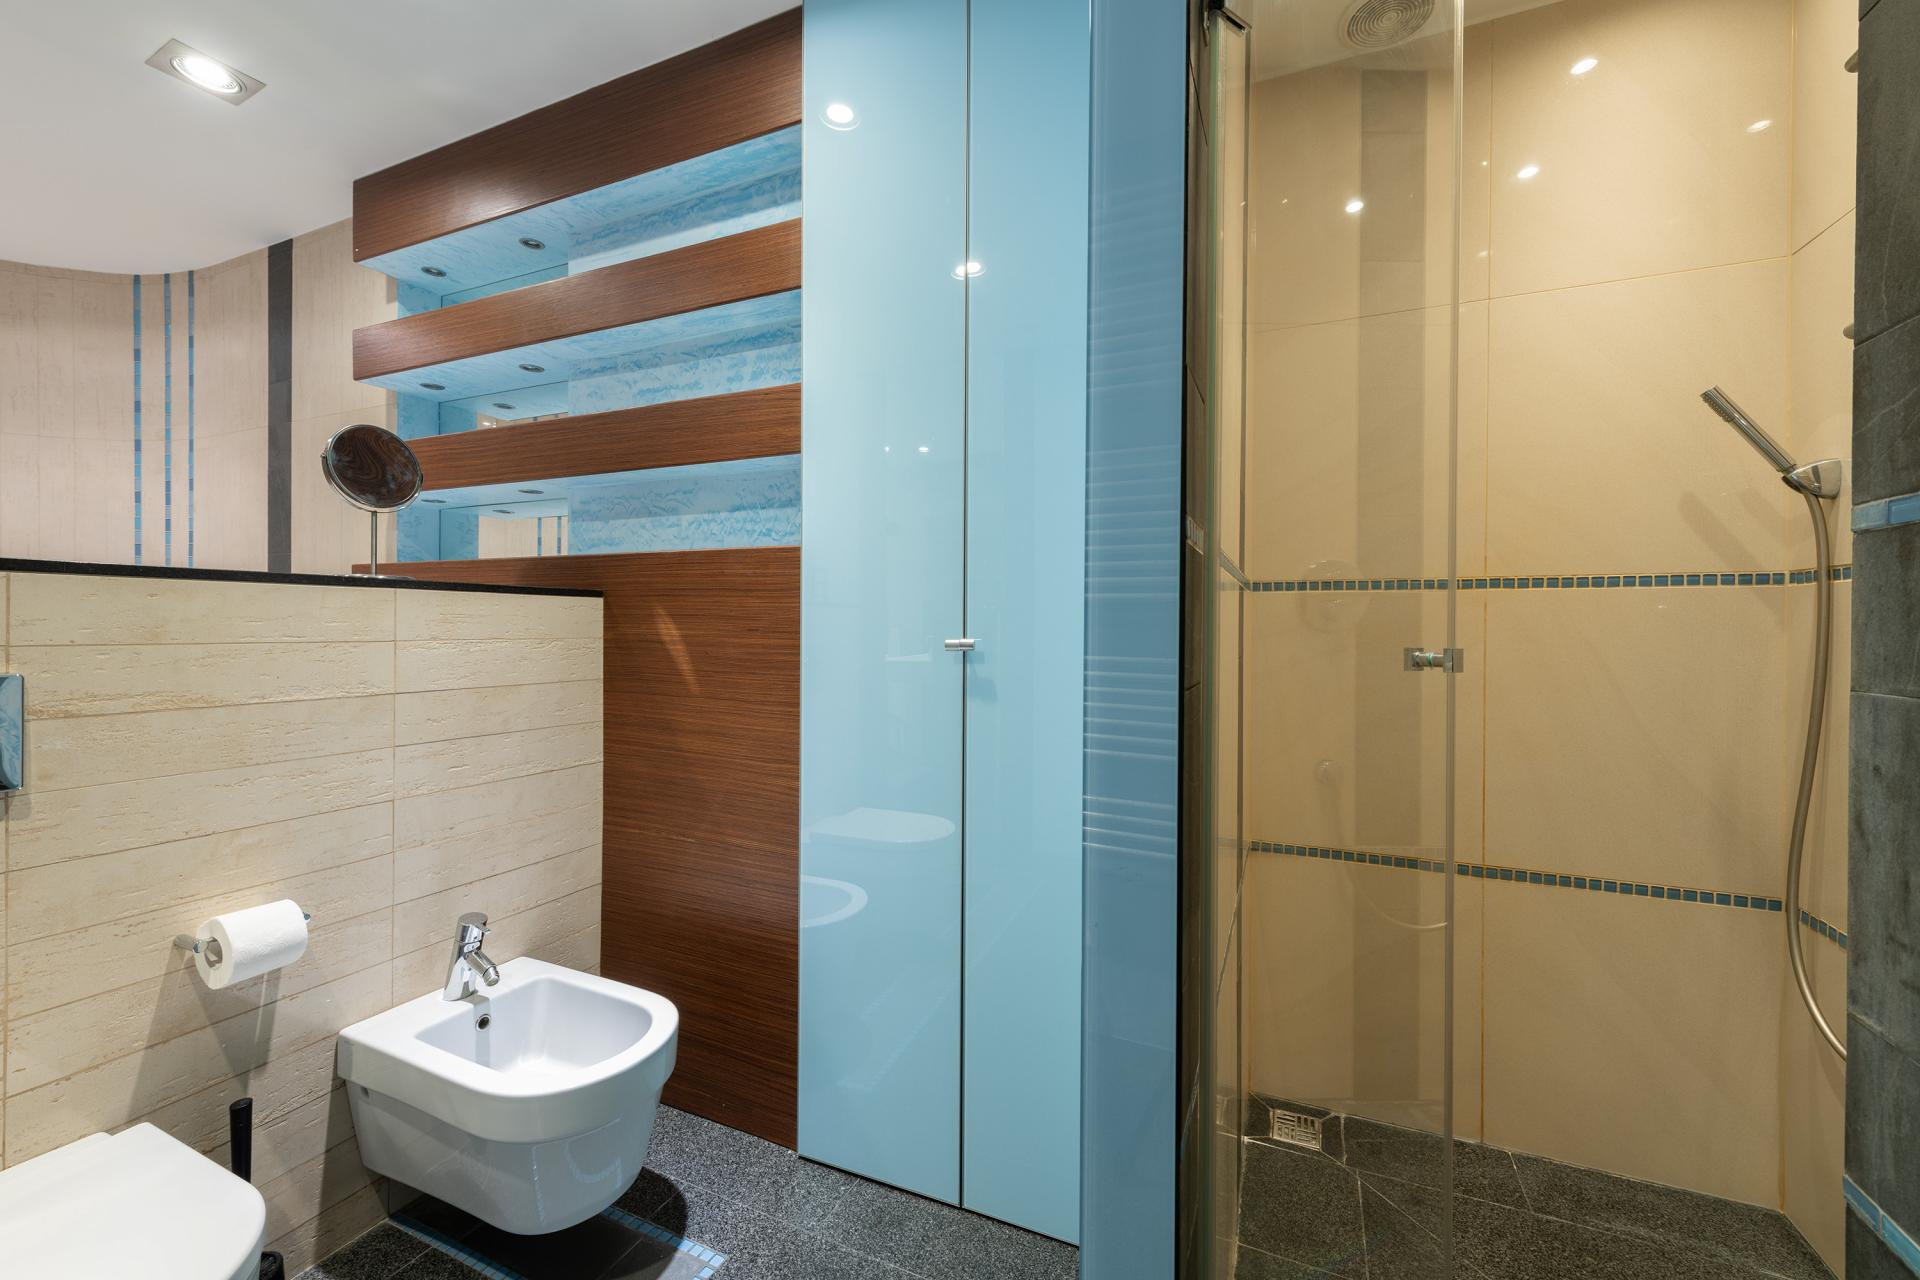 Shower at Wilanow 6 Apartments, Wilanów, Warsaw - Citybase Apartments